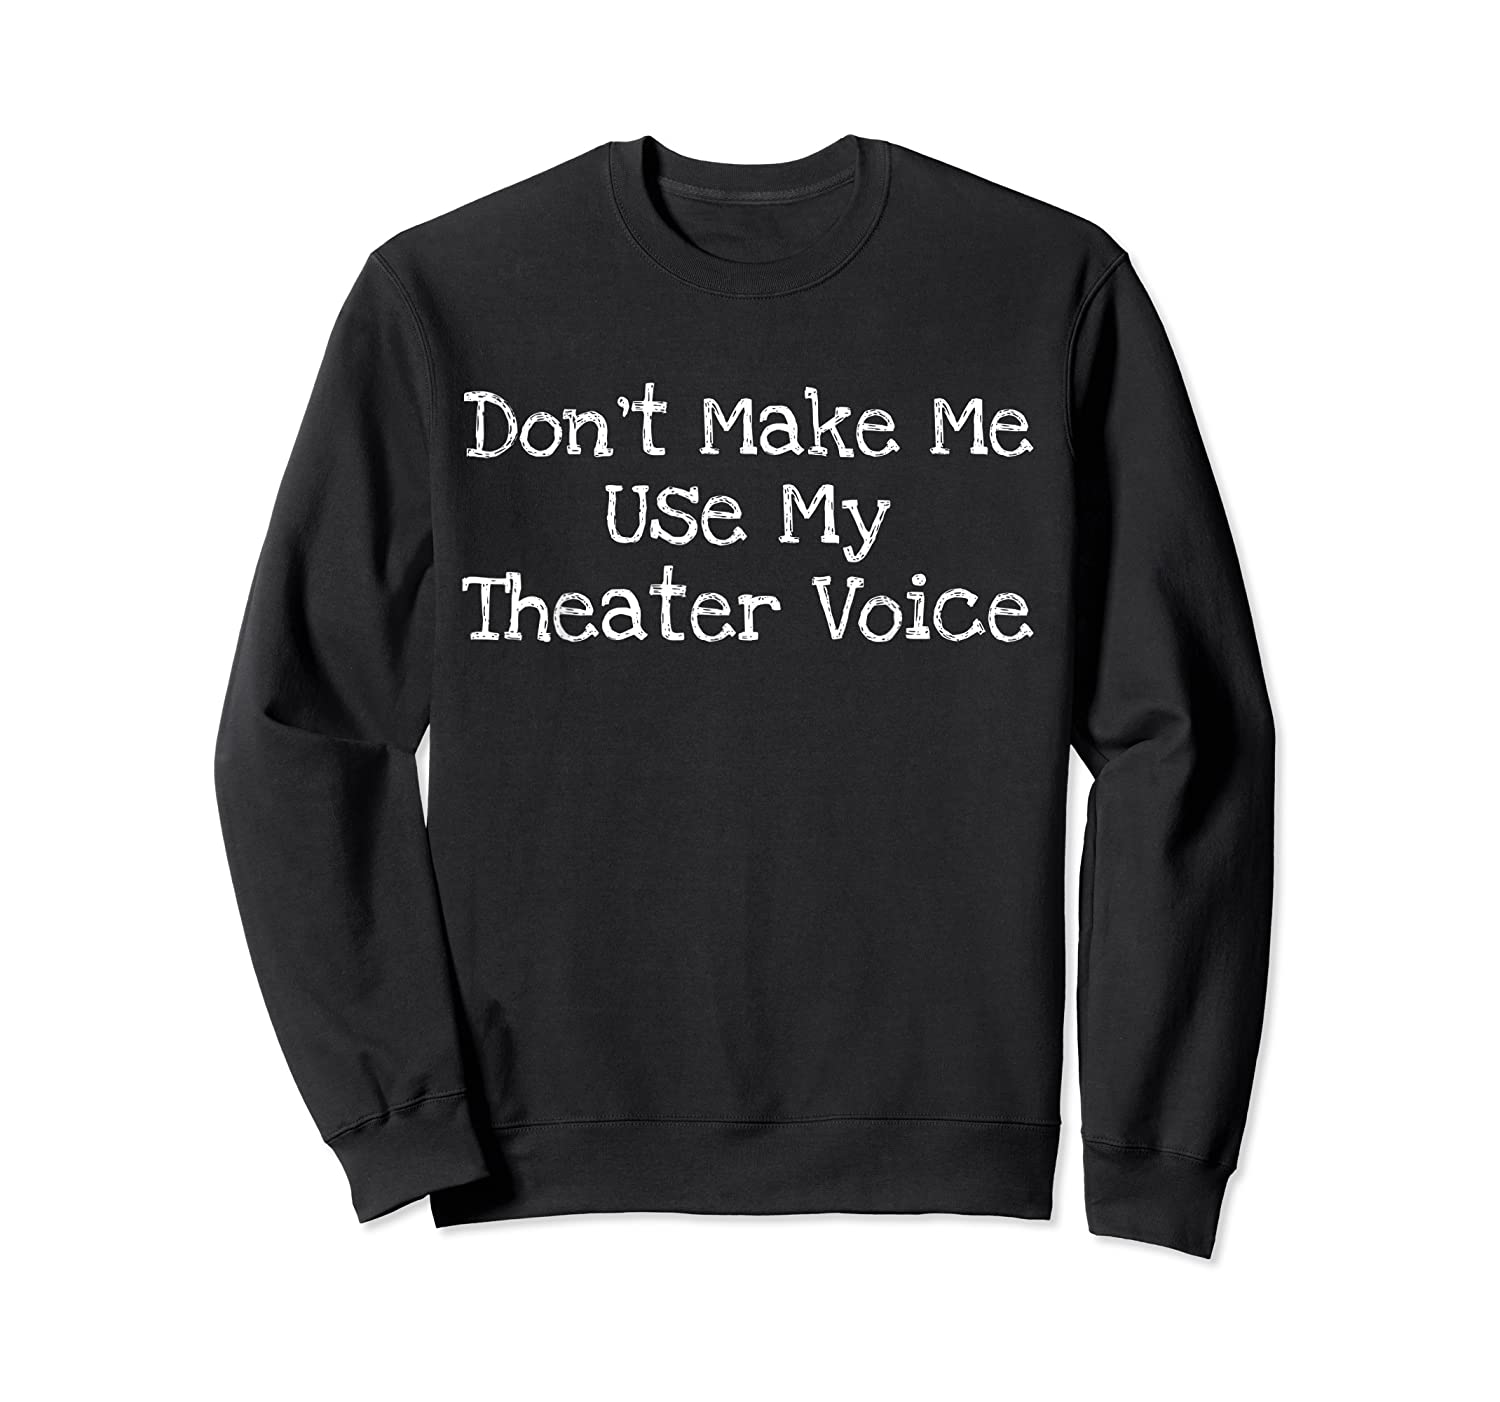 Don't Make Me Use My Theater Voice Shirts Crewneck Sweater